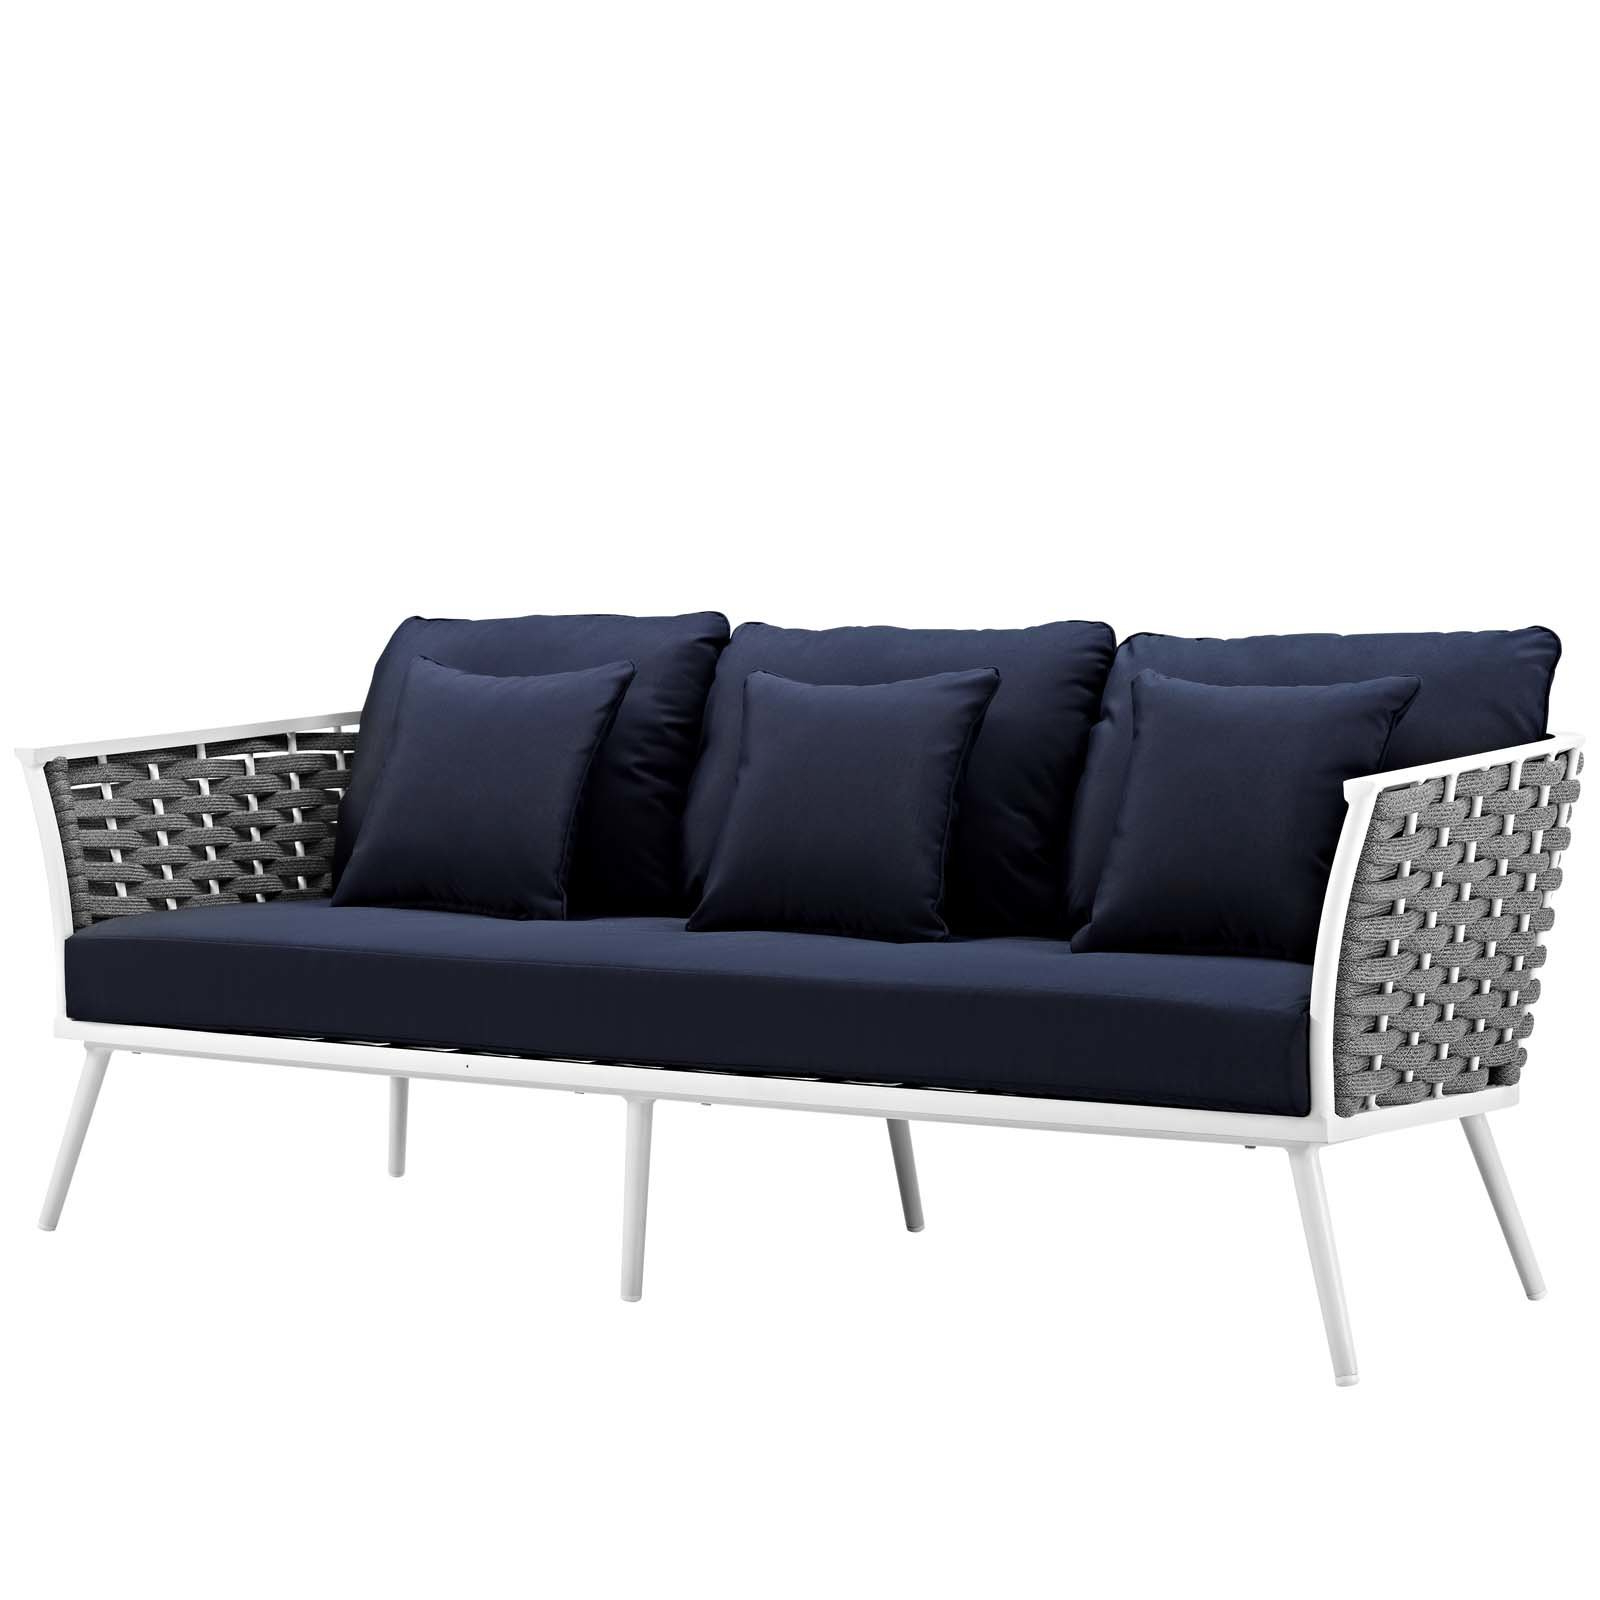 Fashionable Rossville Outdoor Patio Sofa With Cushions Inside Stapleton Wicker Resin Patio Sofas With Cushions (View 12 of 20)